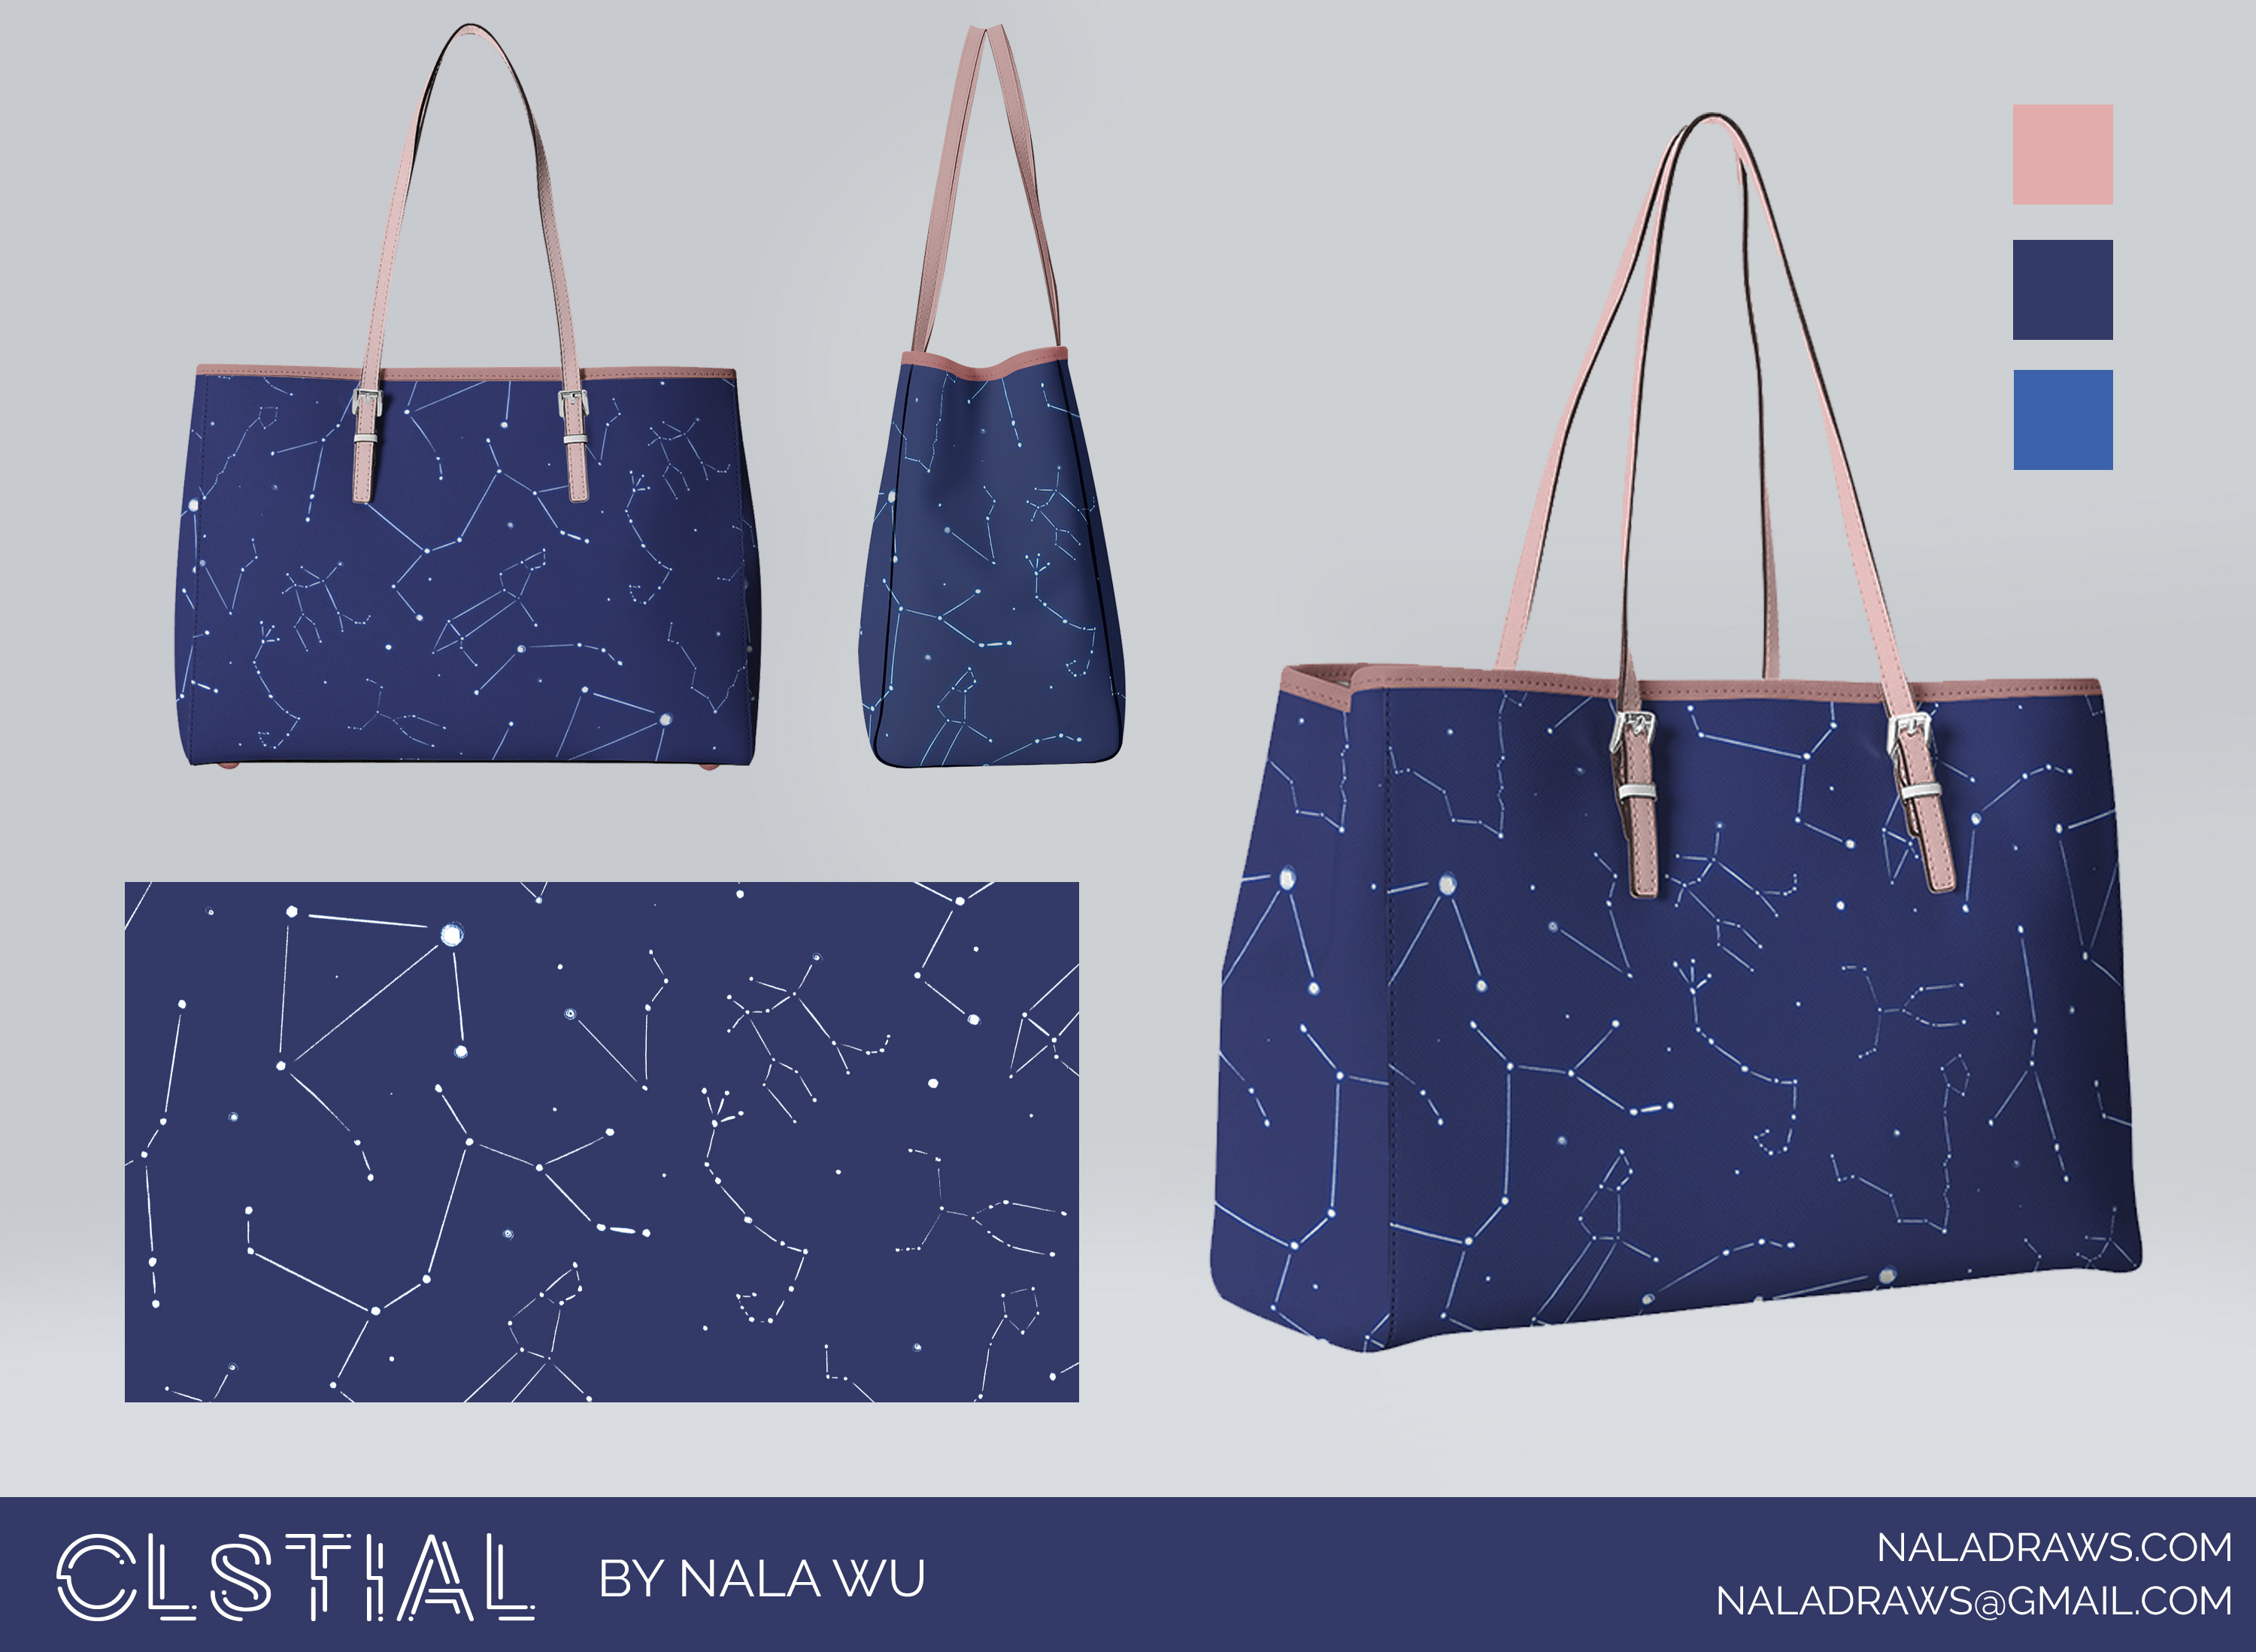 Three mockups of the handbag with a color palette